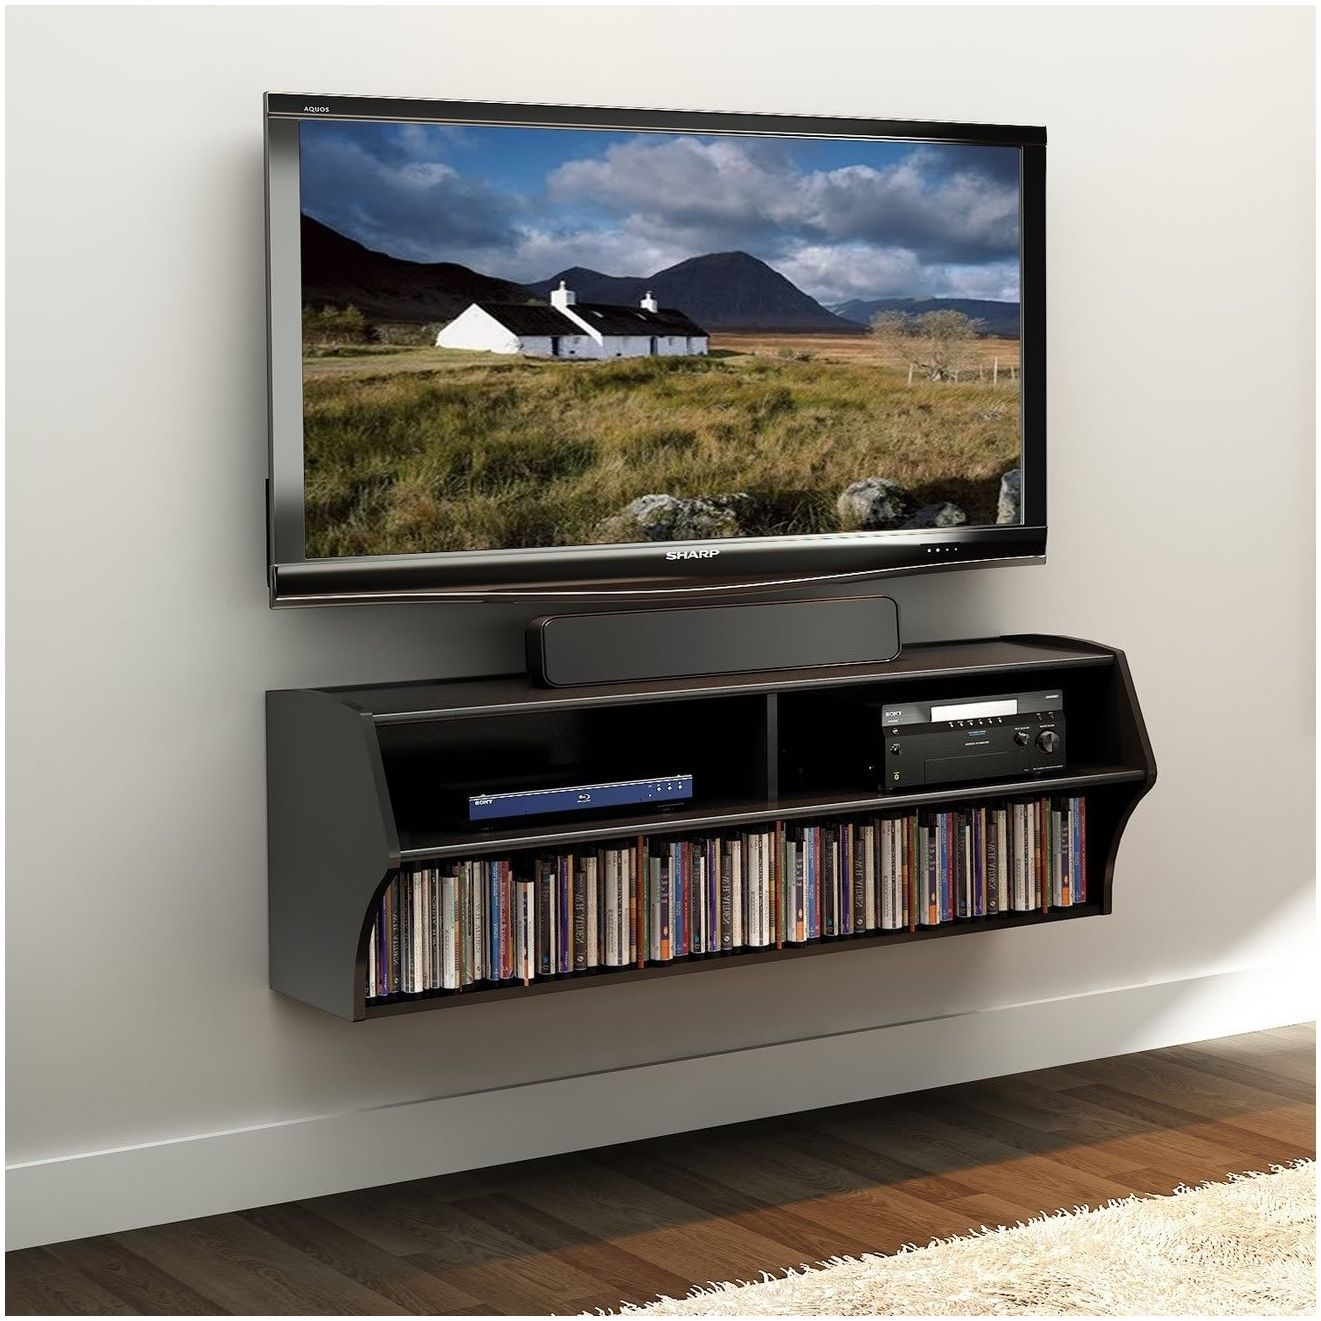 Shelf Cable Box Under Wall Mounted Tv